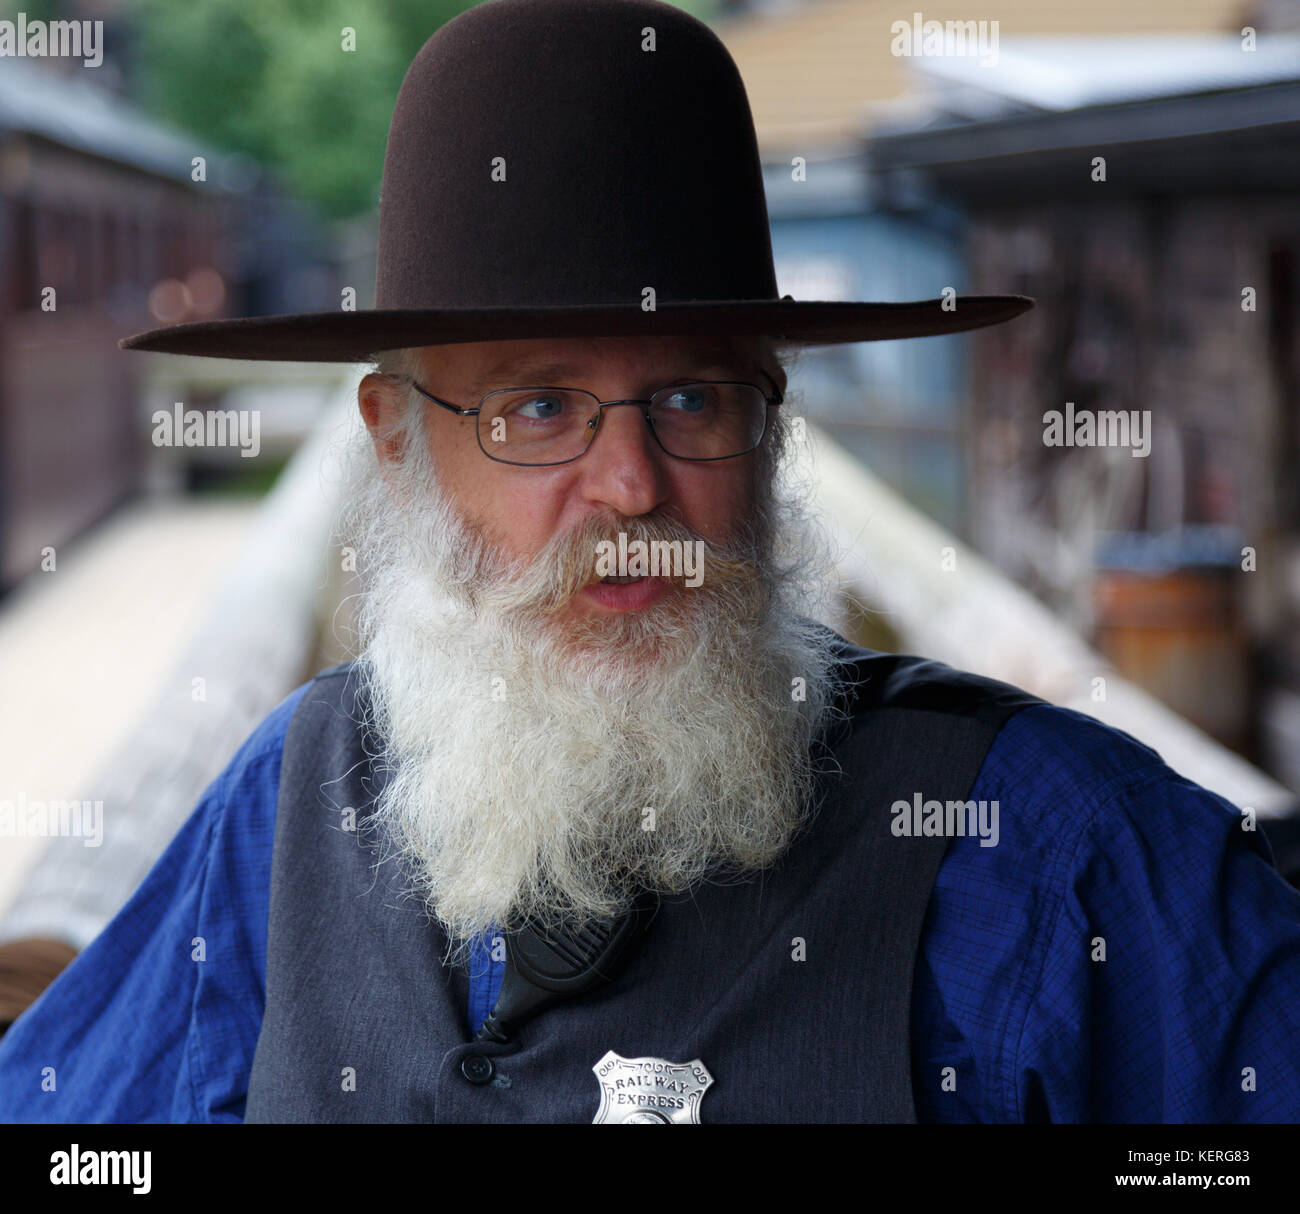 Sheriff at High Chaparral Sweden speaking and looking forward, favorite place for Wild West enthusiasts - Stock Image